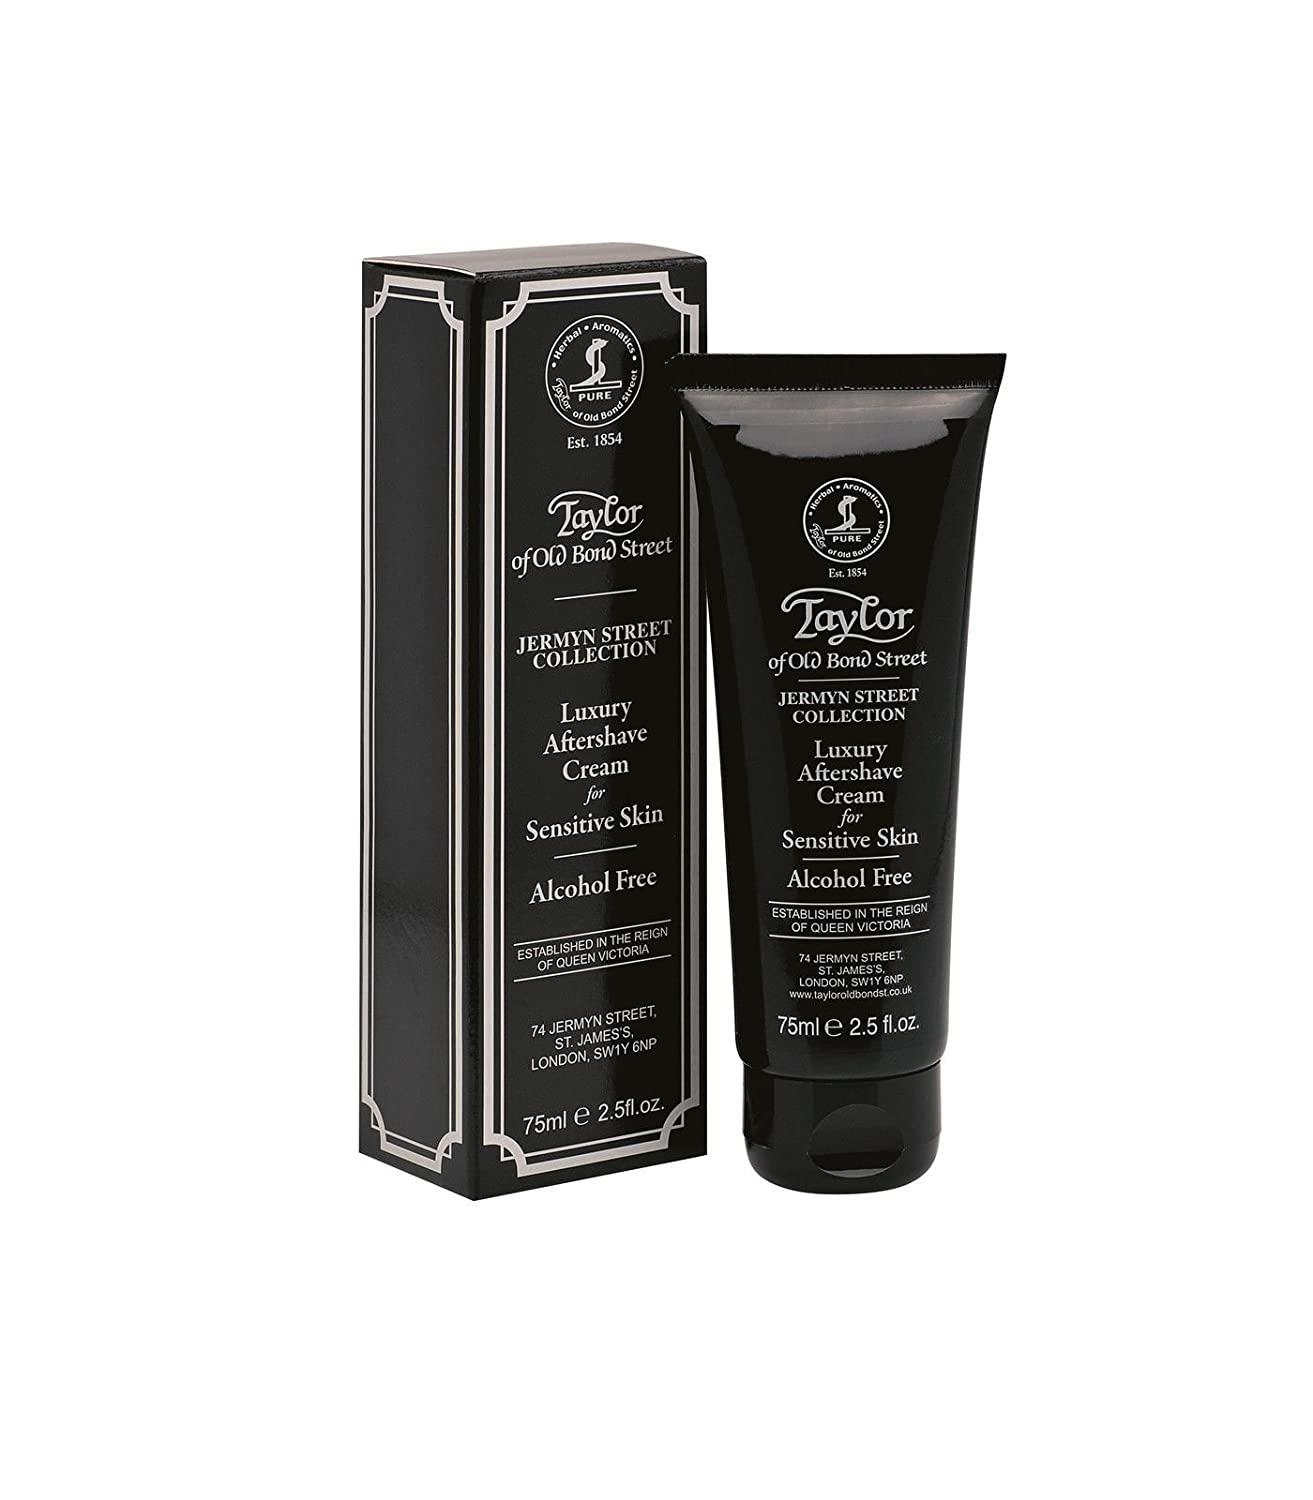 Aftershave Cream Jermyn Street Collection, 75ml - Taylor of Old Bond Street